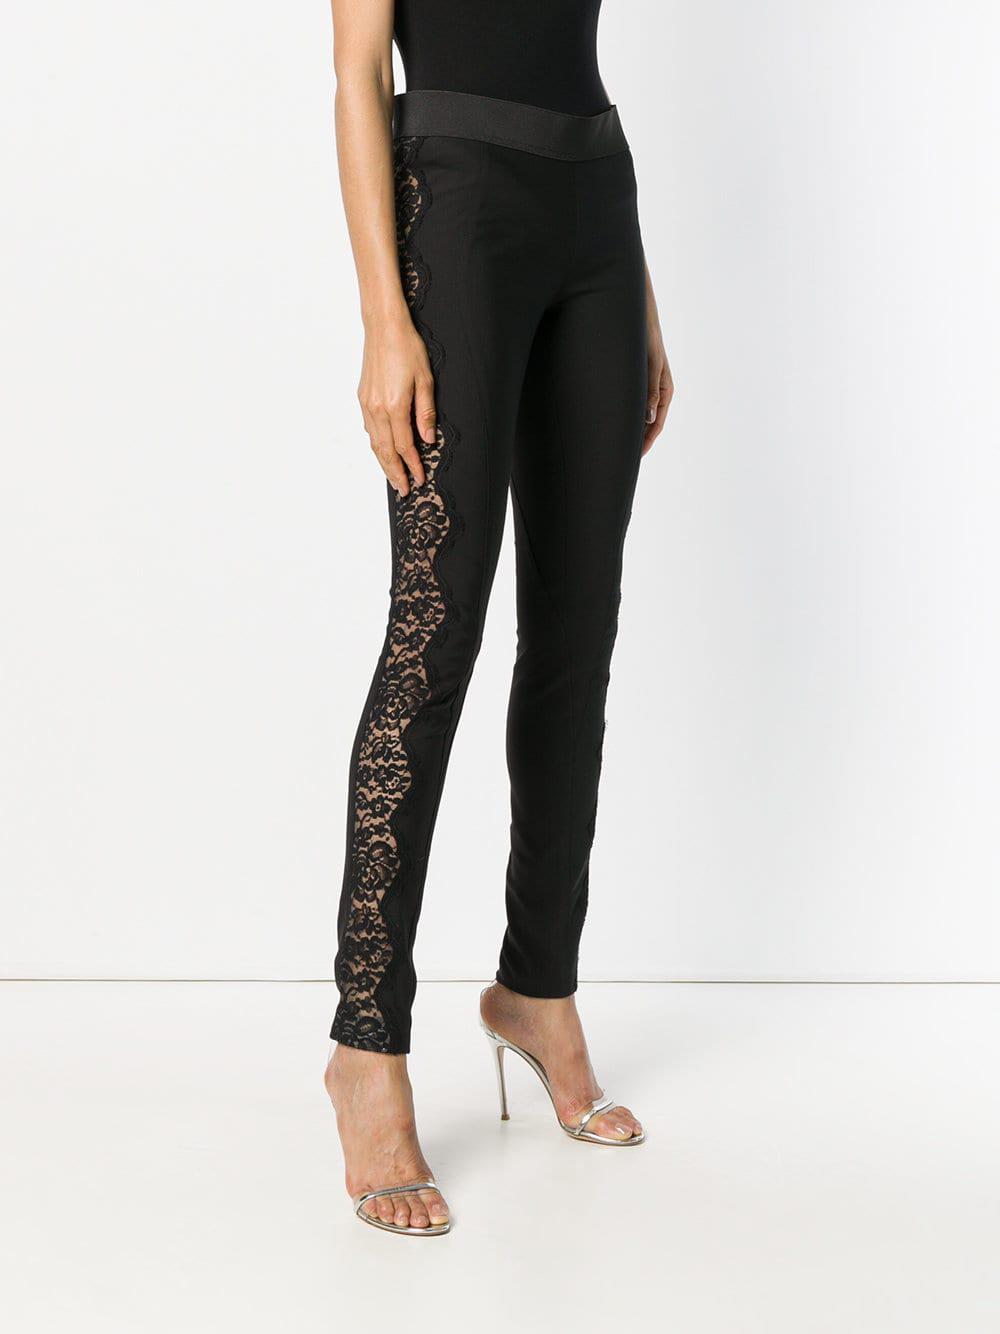 922c3534d840b Stella McCartney - Black Lace-embellished leggings - Lyst. View fullscreen